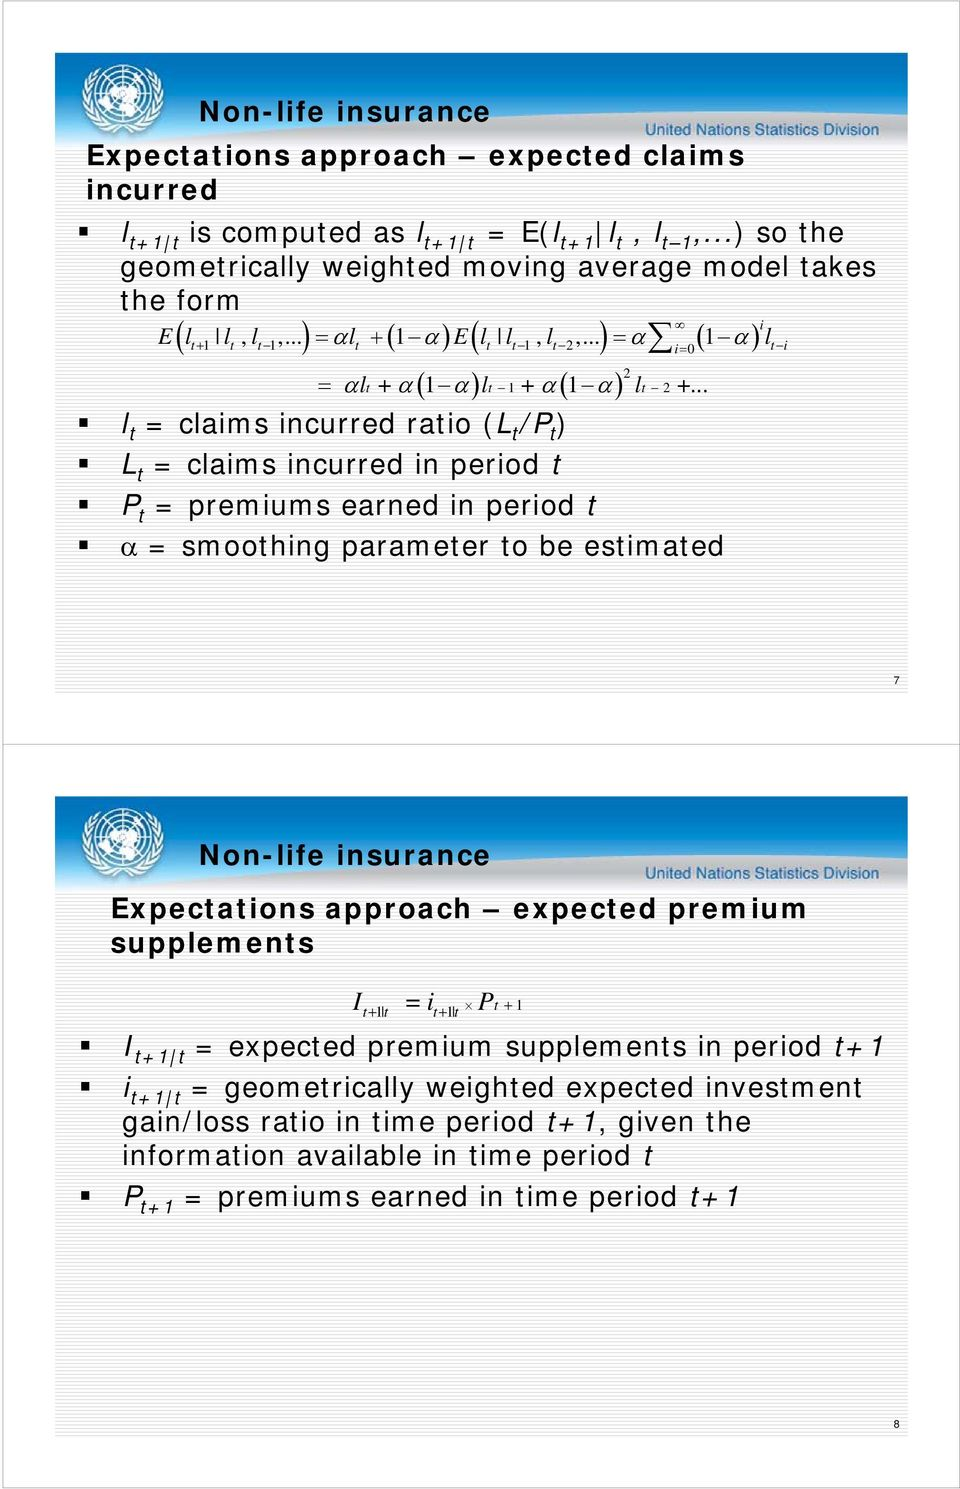 .. l t = claims incurred ratio (L t /P t ) L t = claims incurred in period t P t = premiums earned in period t = smoothing parameter to be estimated 7 Expectations approach